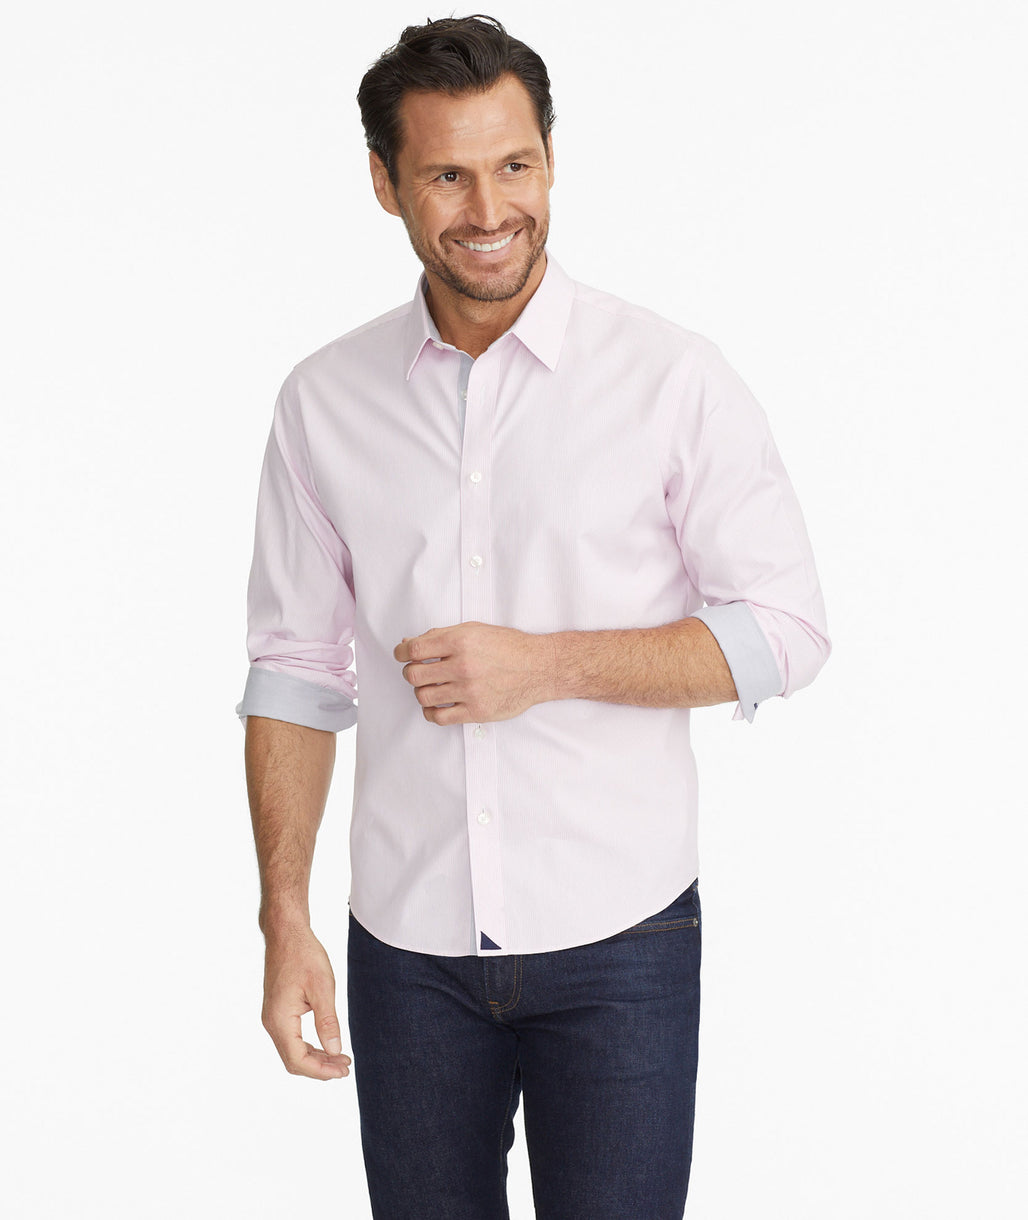 Model wearing a Pink Wrinkle-Free Striped Shirt with Contrast Interior